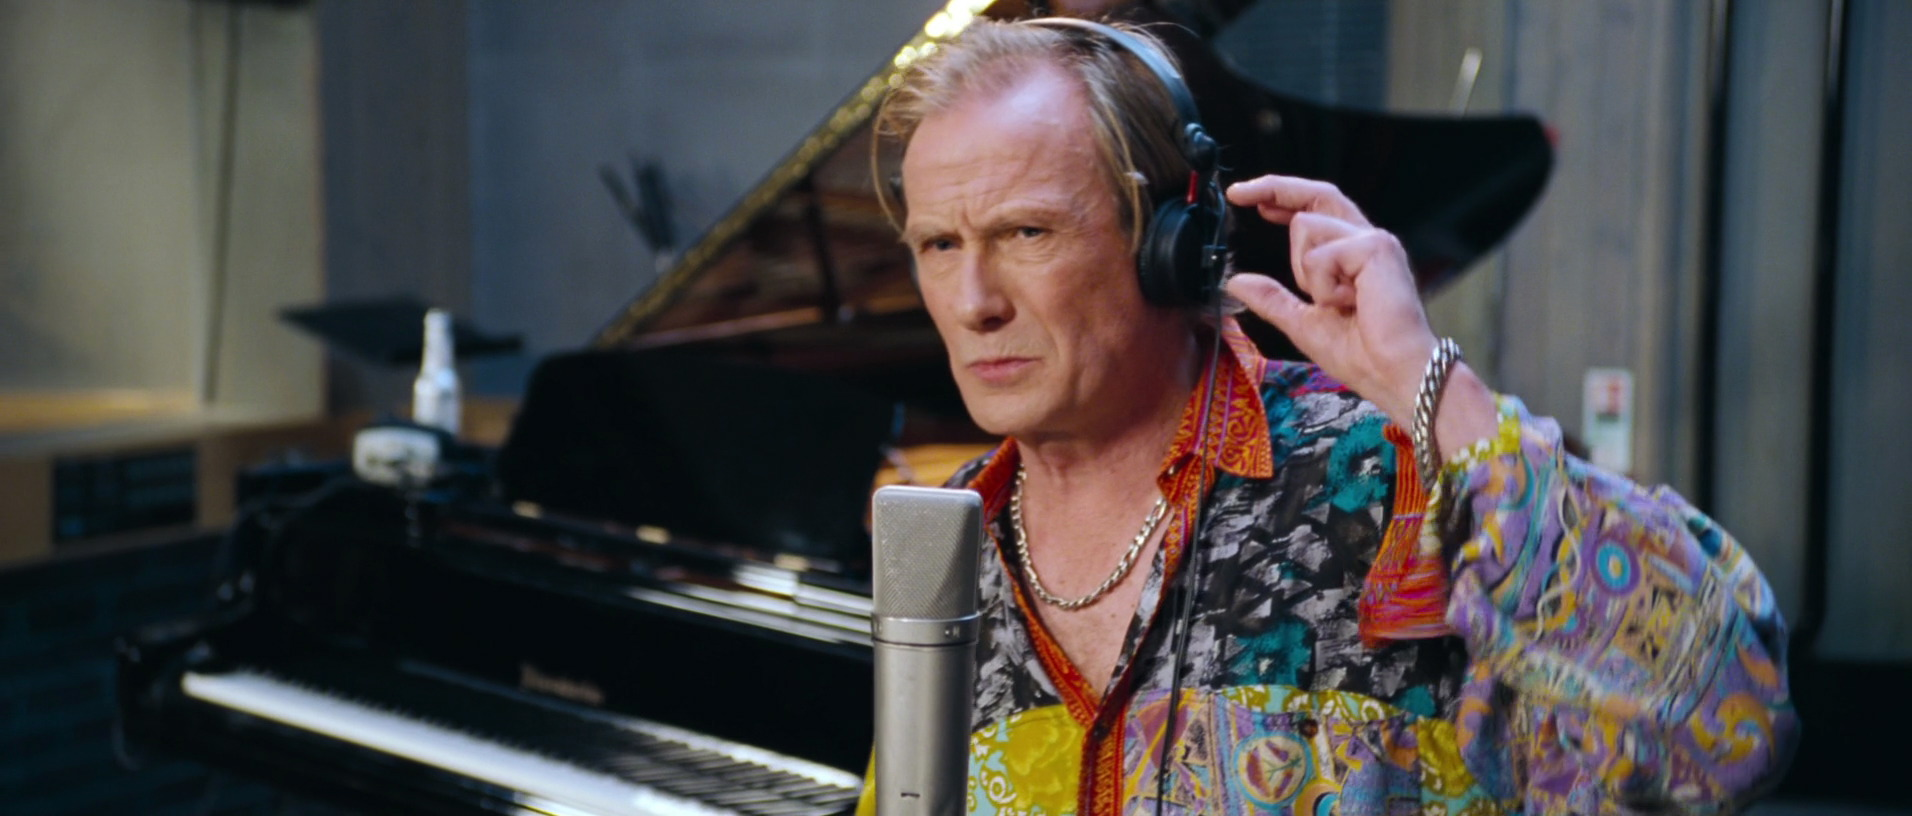 Resultado de imagen para love actually bill nighy britney spears